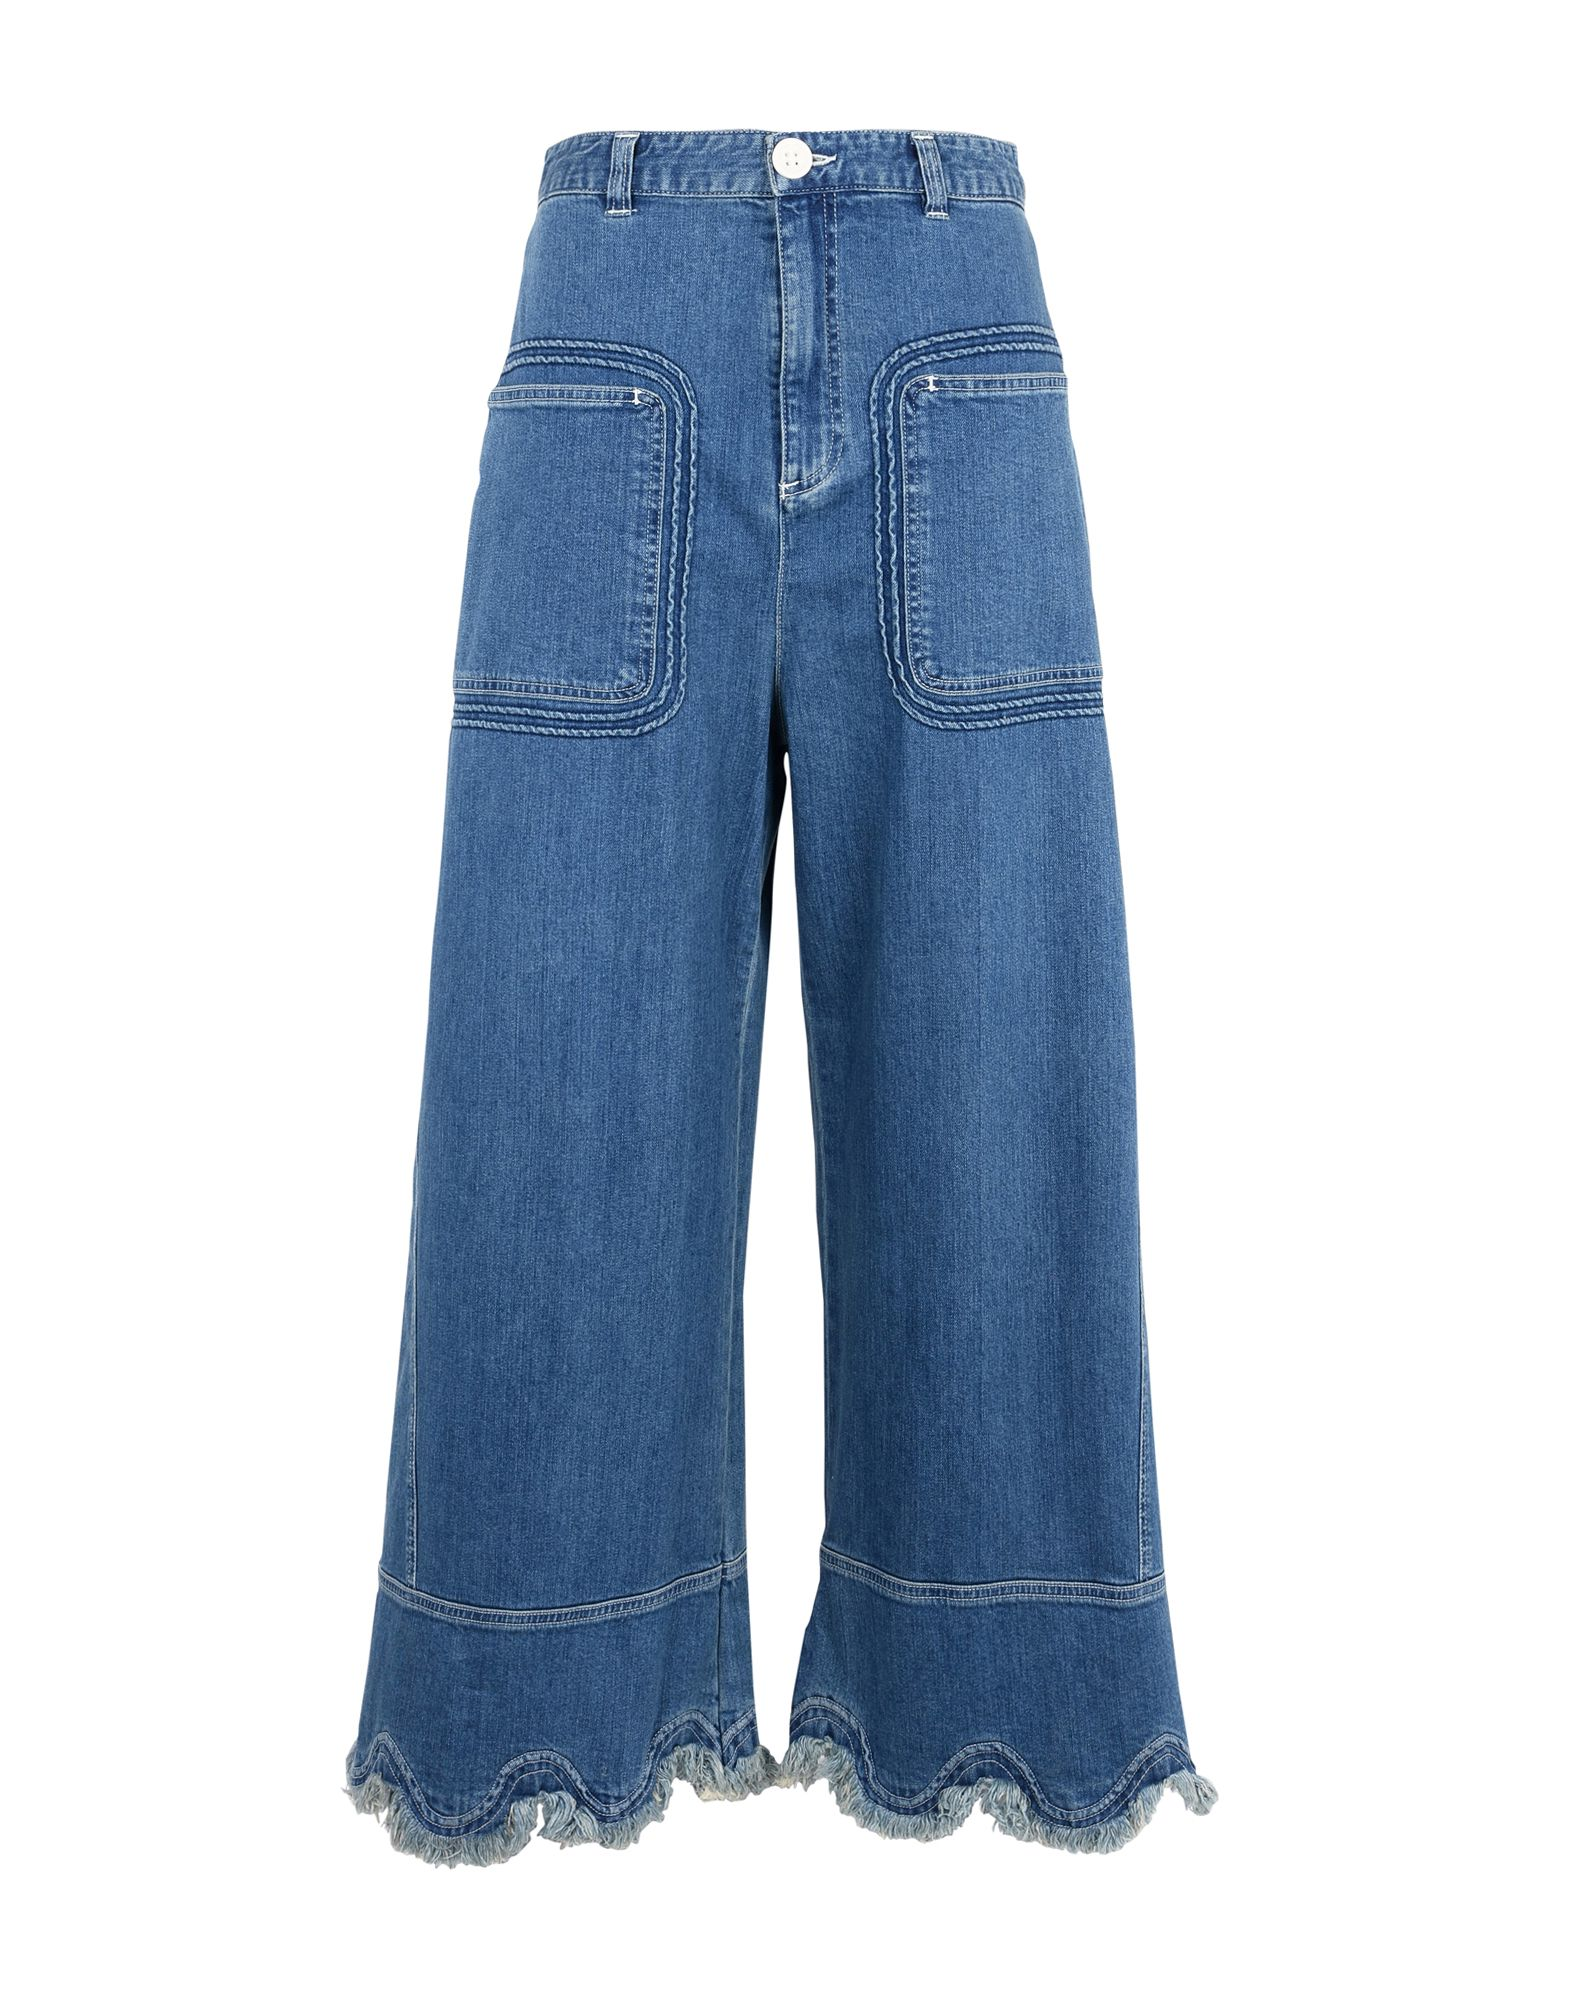 Pantaloni Jeans See By Chloé Donna - Acquista online su